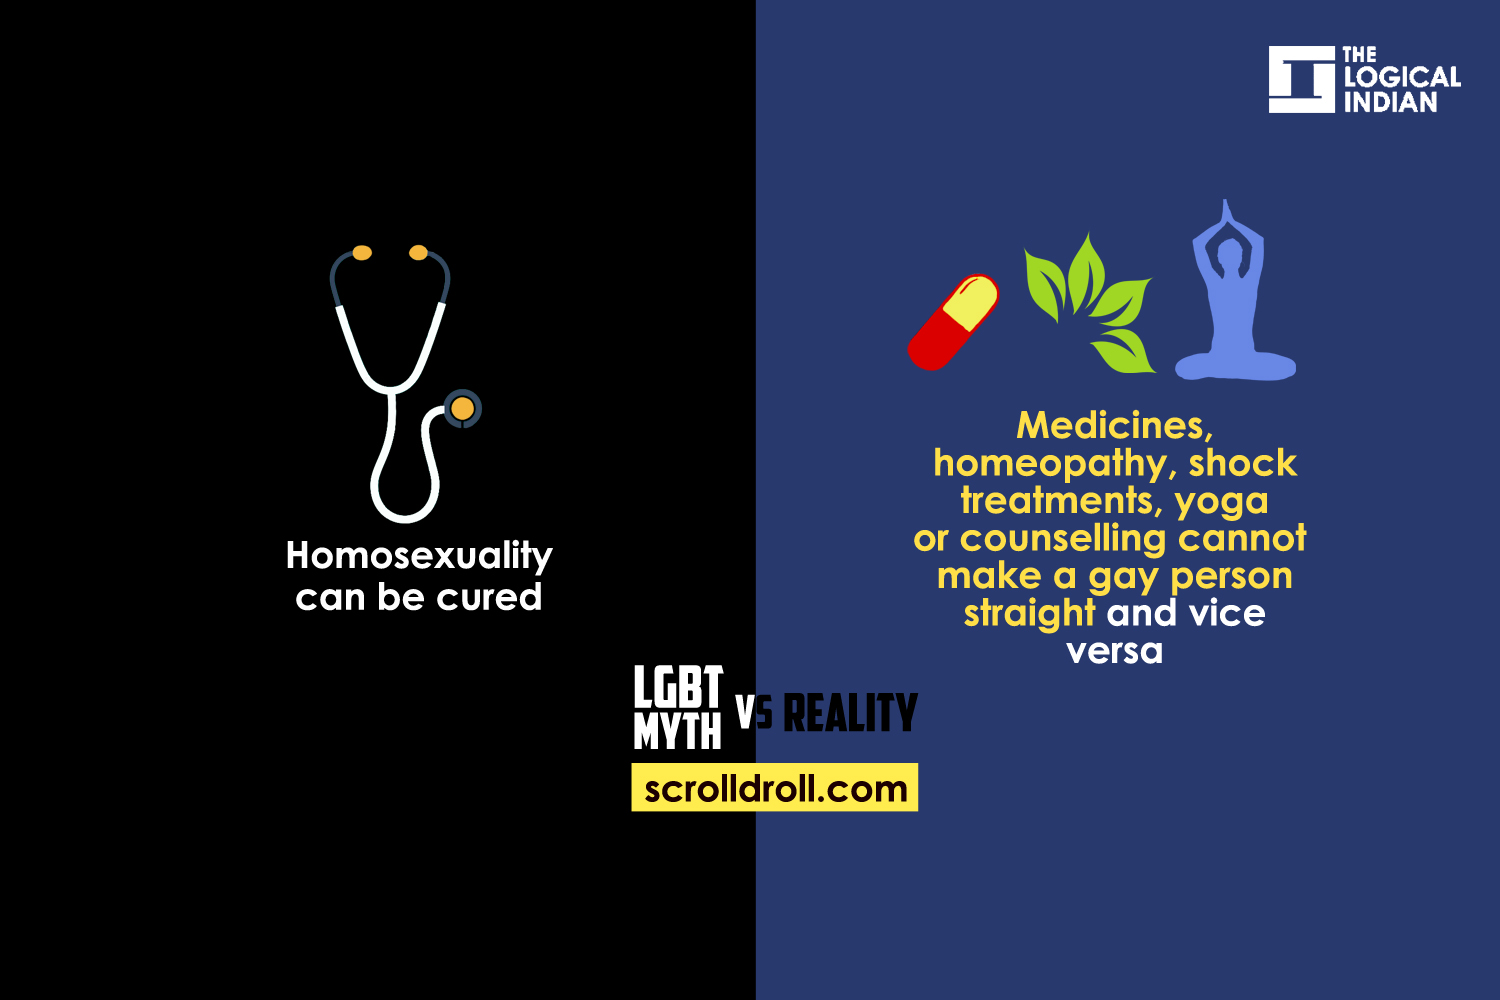 There is no cure for homosexuality